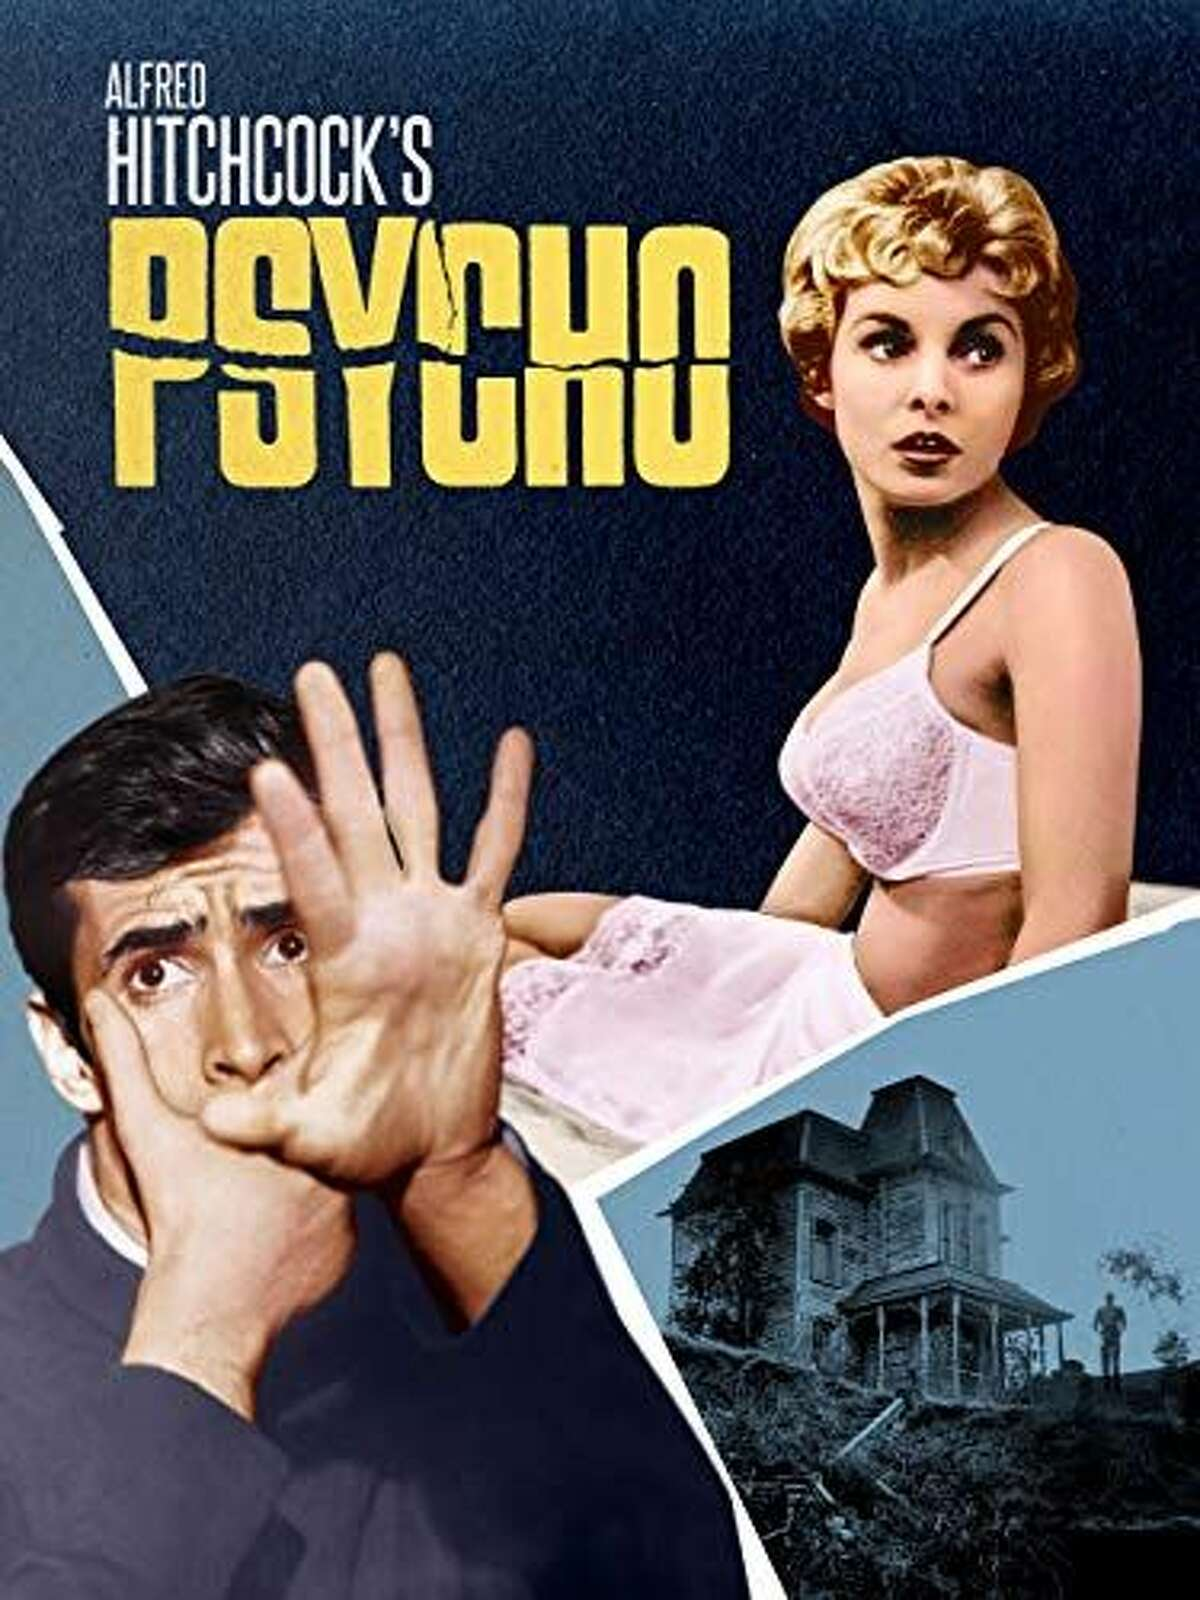 8) Psycho (1960): $14.99 STREAM NOW When Marion Crane runs off with stolen money and retreats to the run-down Bates Motel, the deranged motel owner pays her an unwelcome visit.